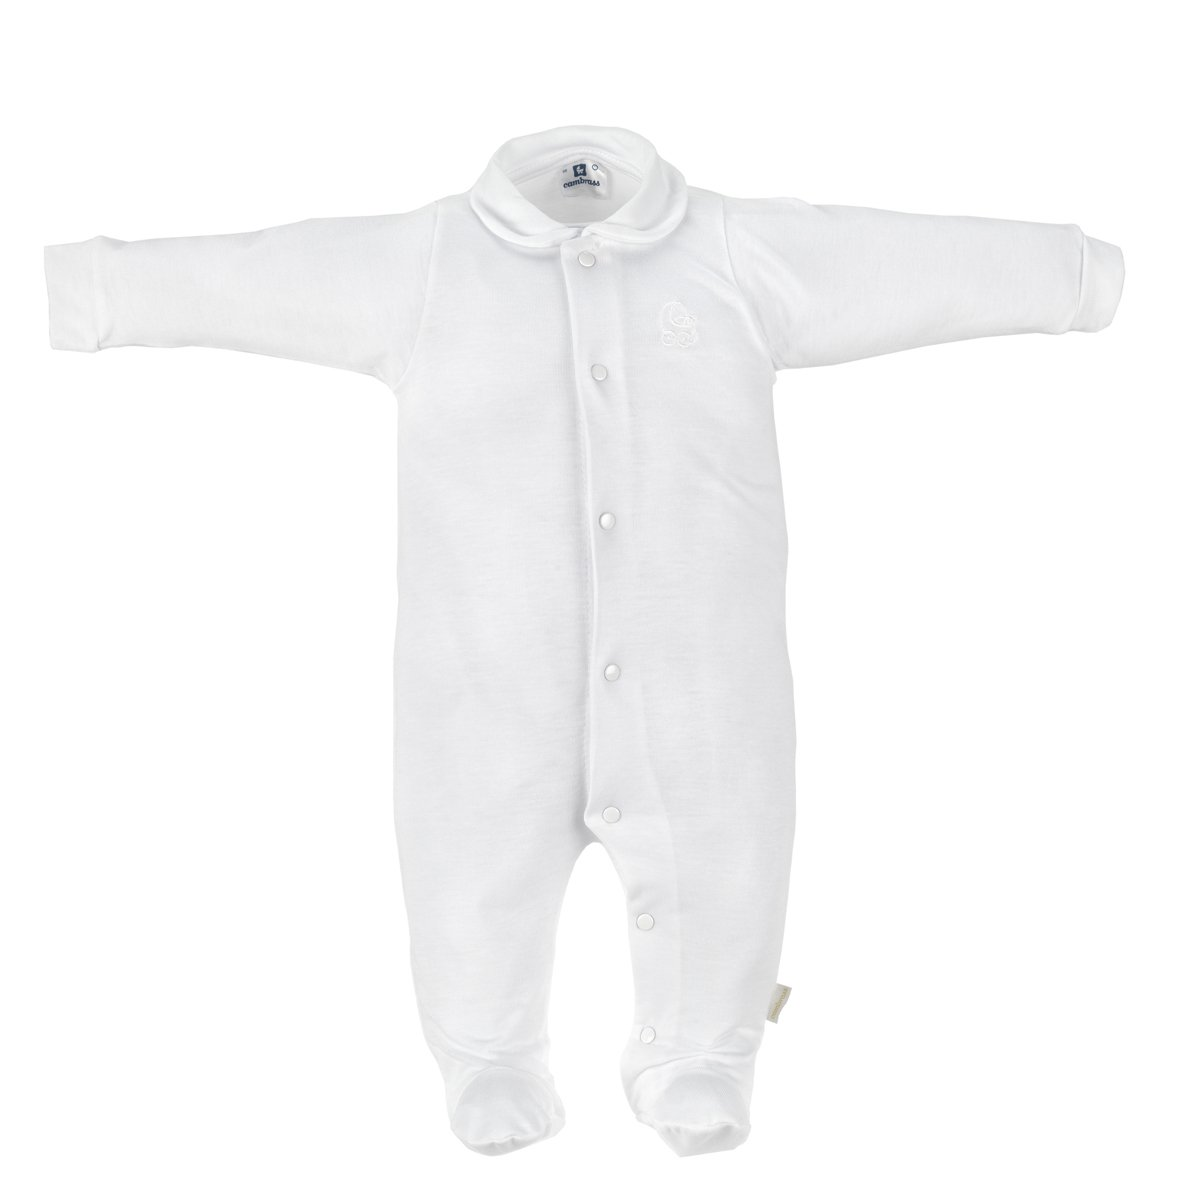 Cambrass Unisex Baby 159.1 Long Sleeve Bodysuit 15170_p